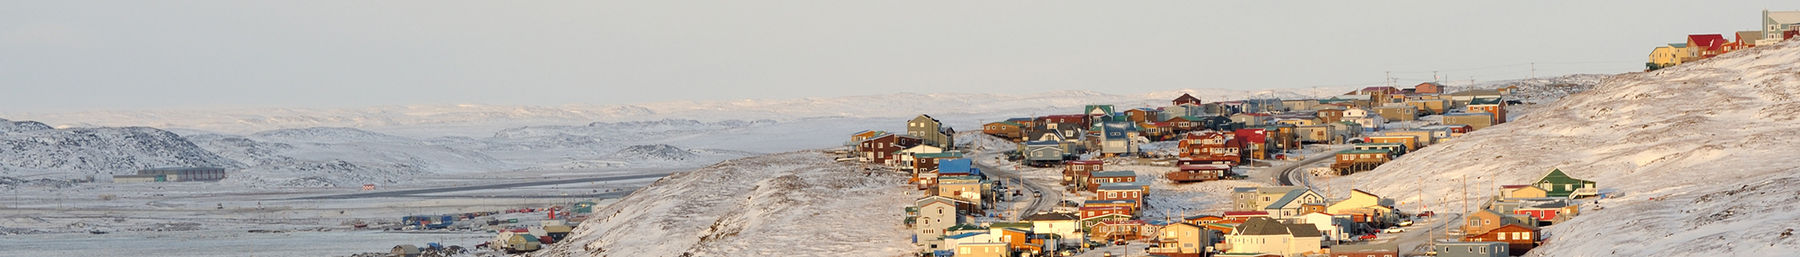 iqaluit chat Deep discounts on hotels, flights and rental cars get exclusive savings with pricelinecom.